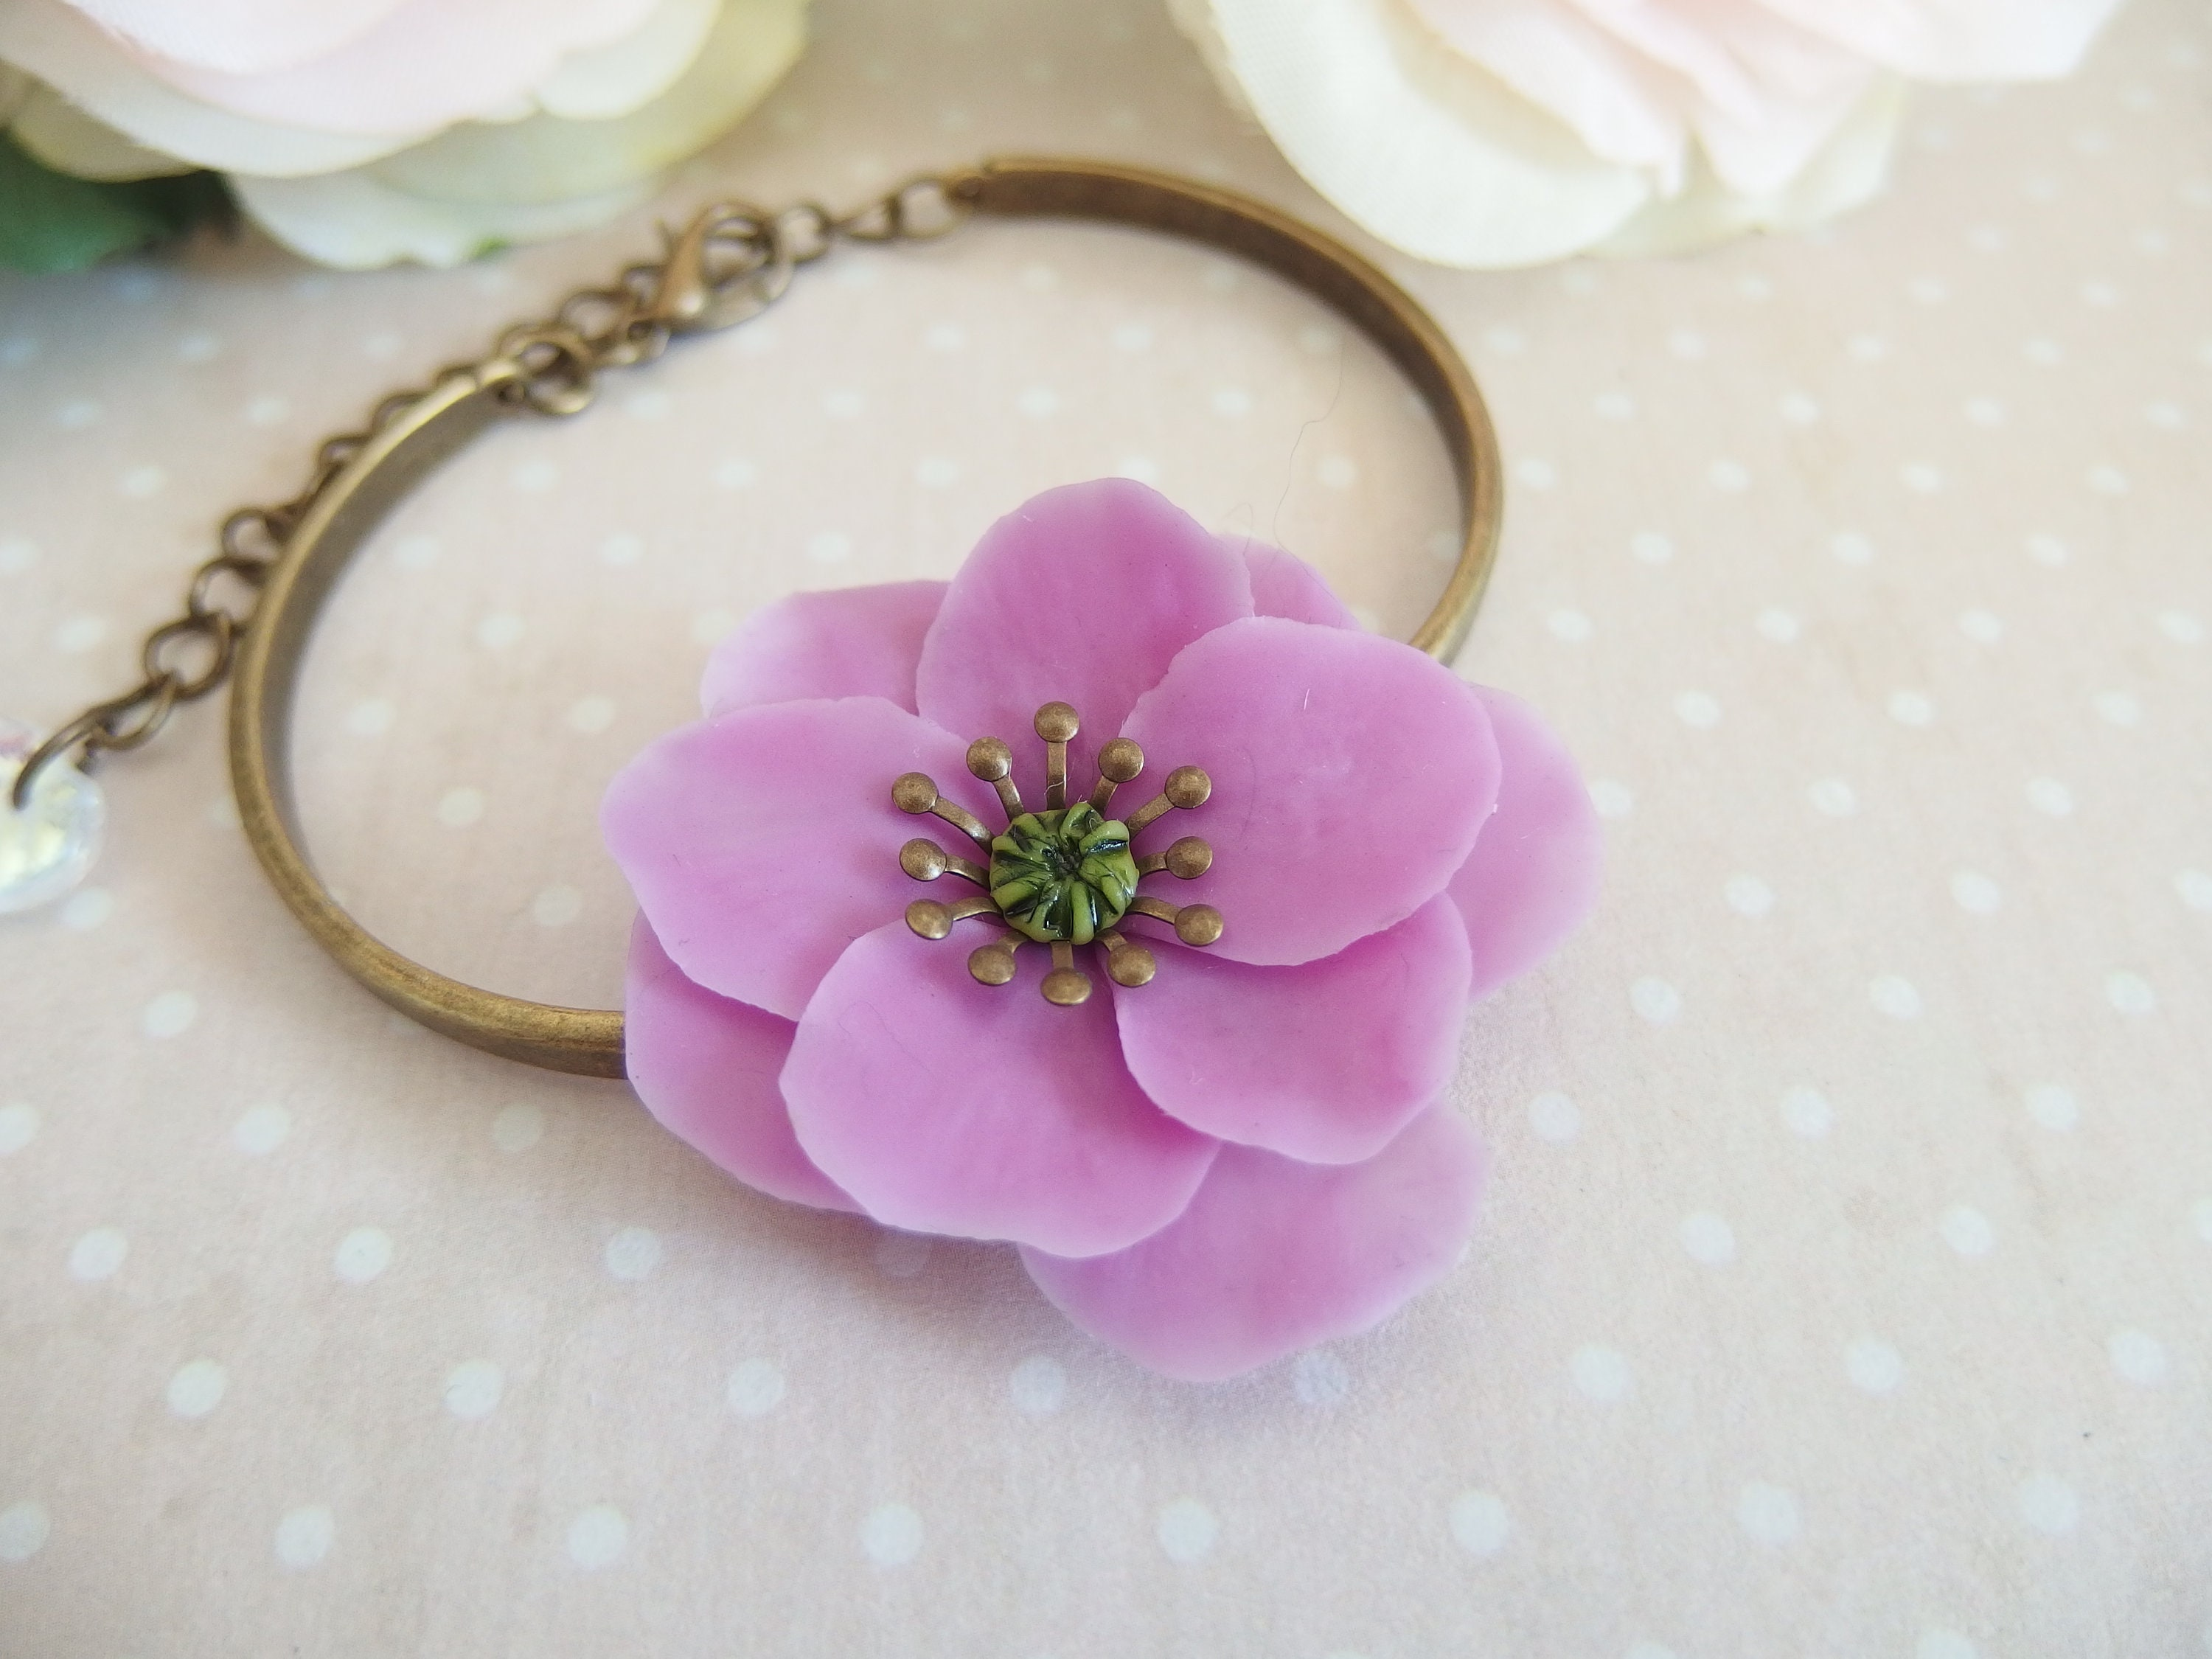 Cold porcelain ring with orchid